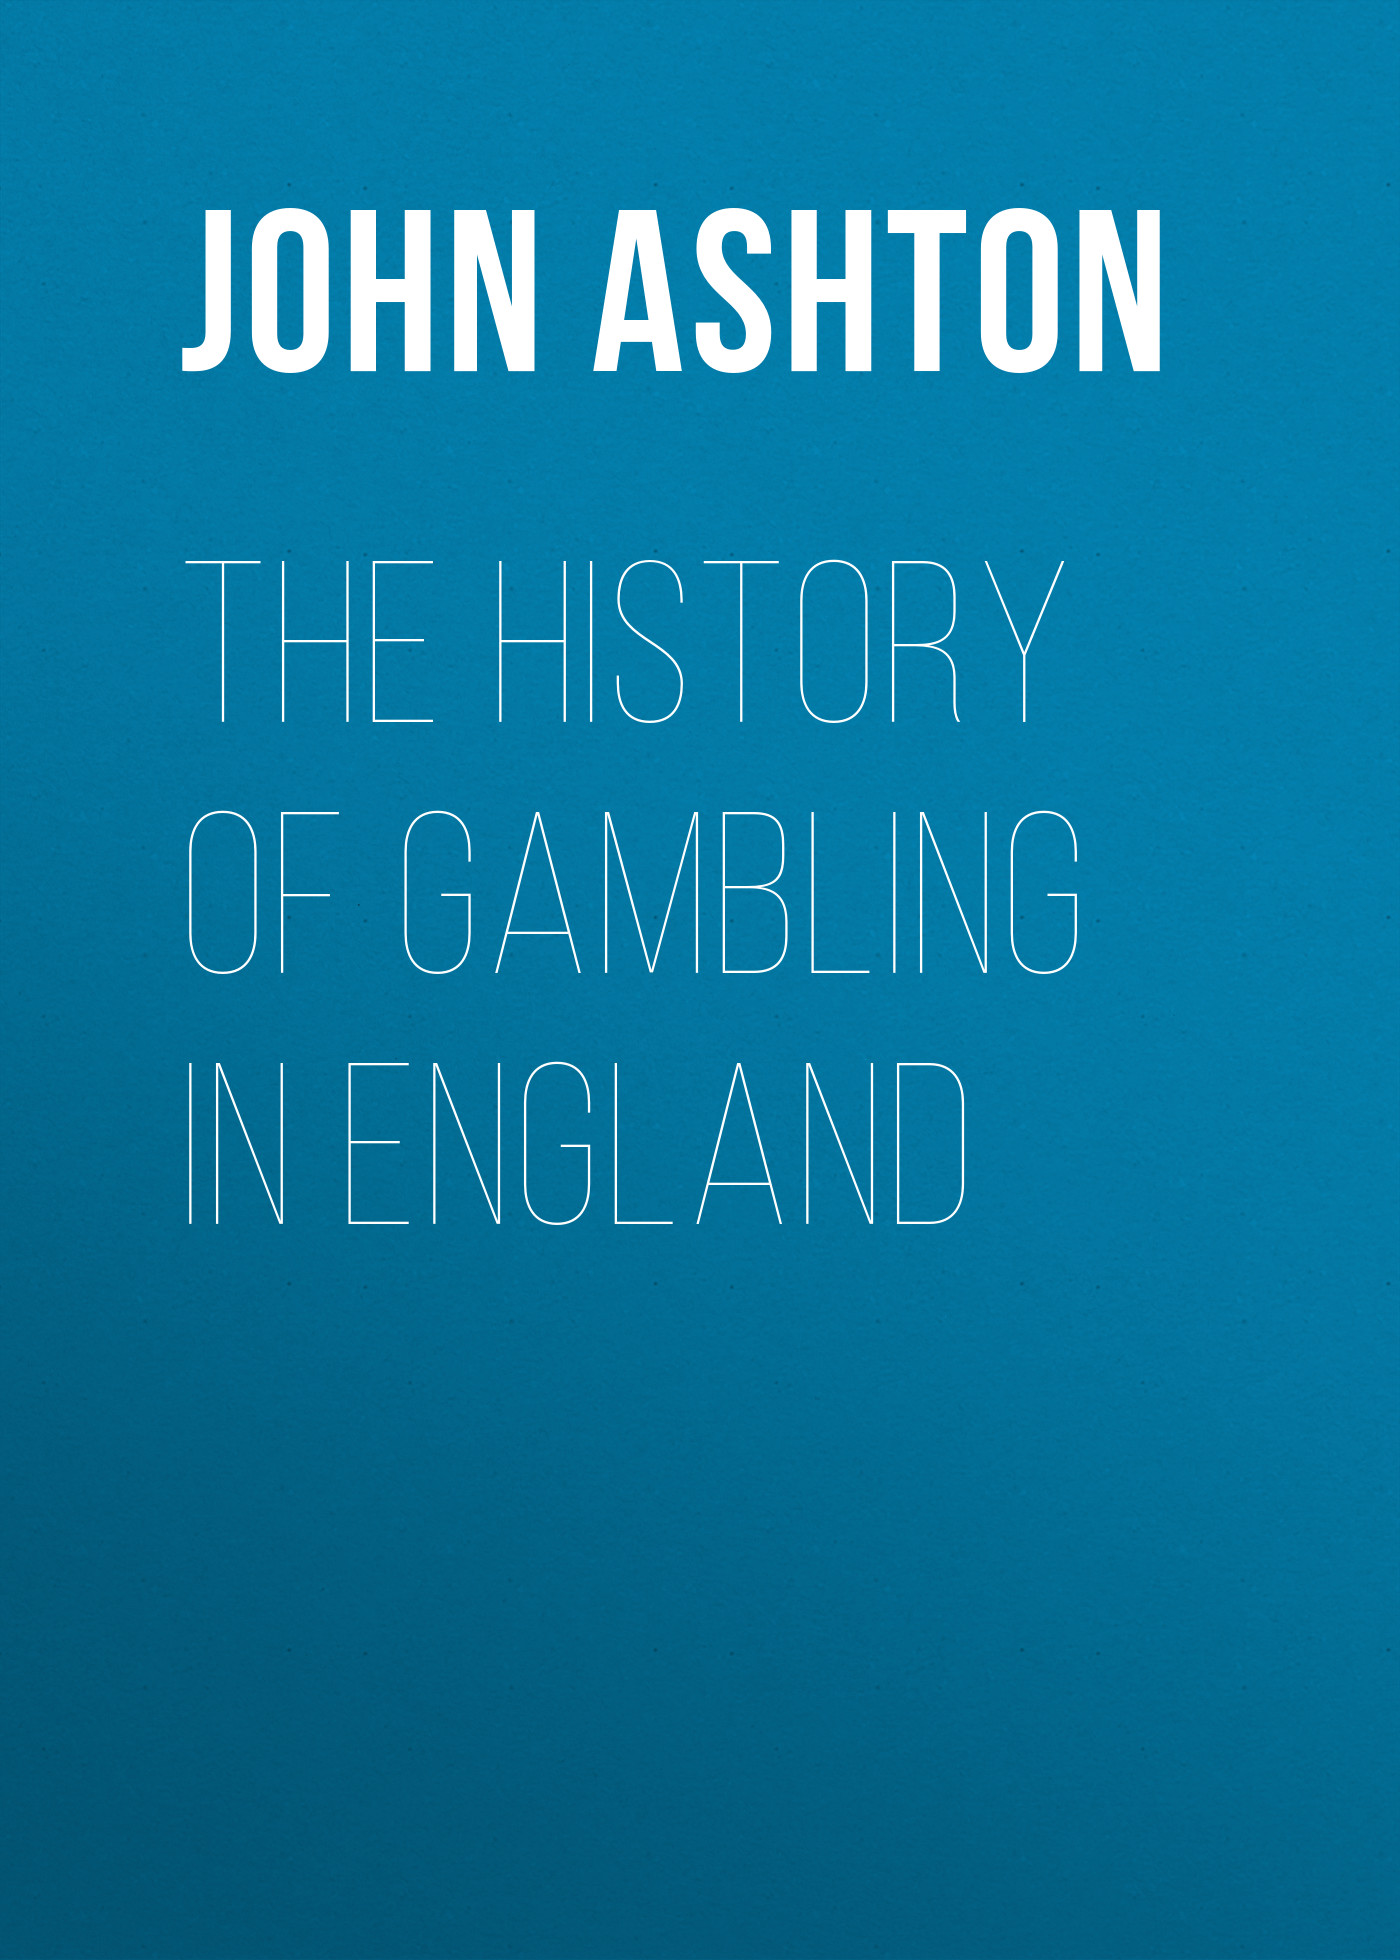 Ashton John The History of Gambling in England ashton john the dawn of the xixth century in england